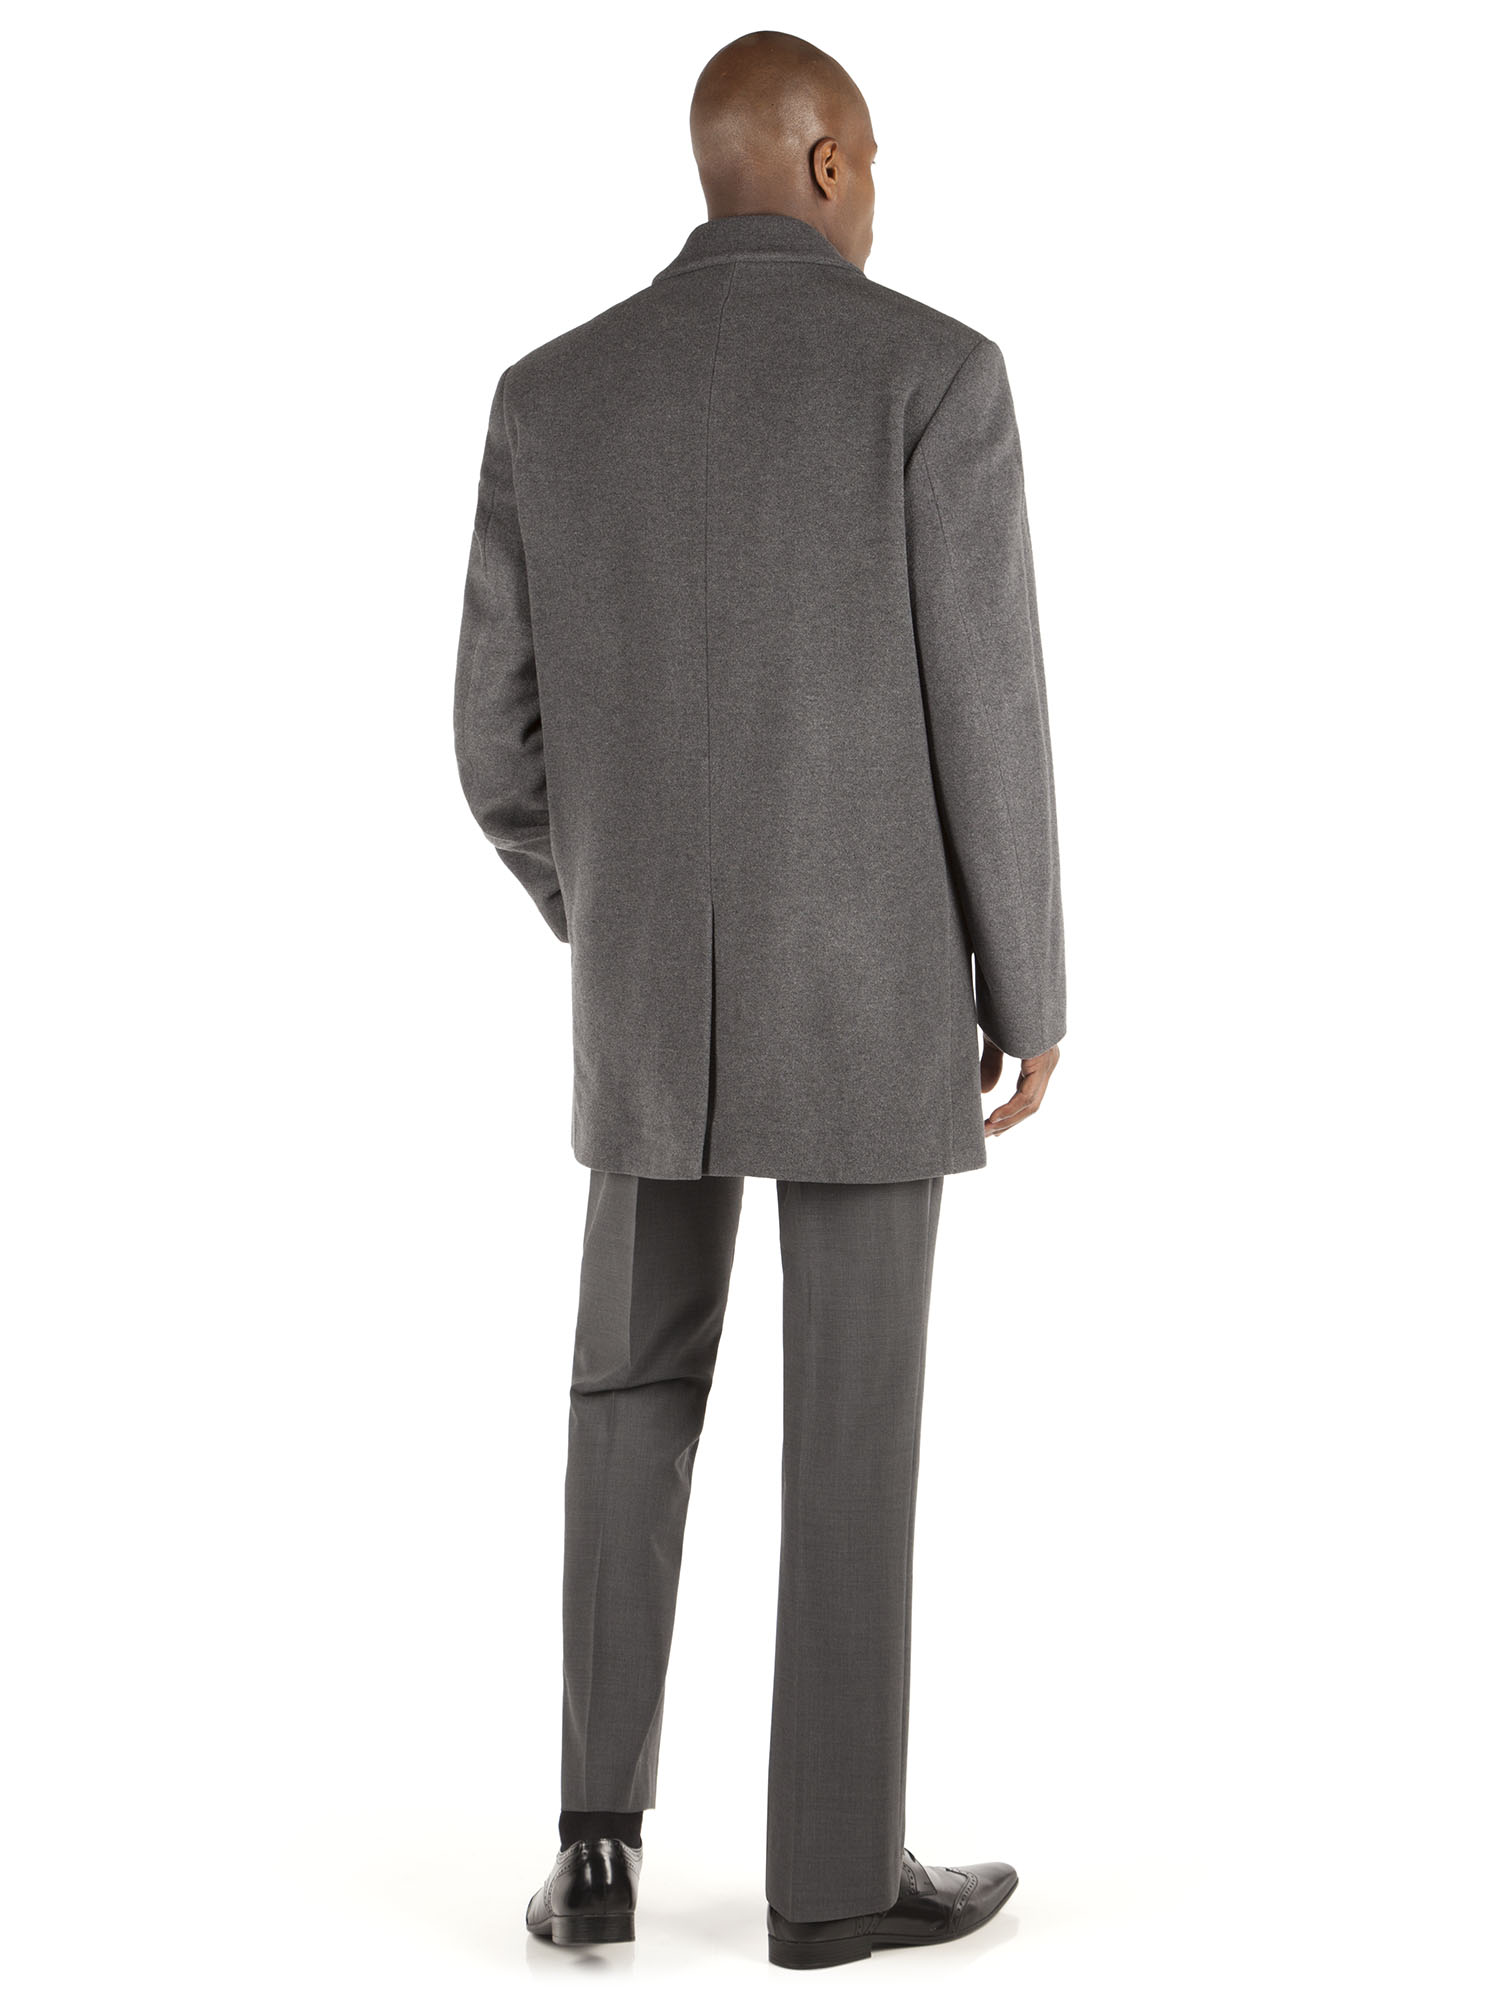 MENS MID GREY WOOL CASHMERE CAR COAT- currently unavailable ...